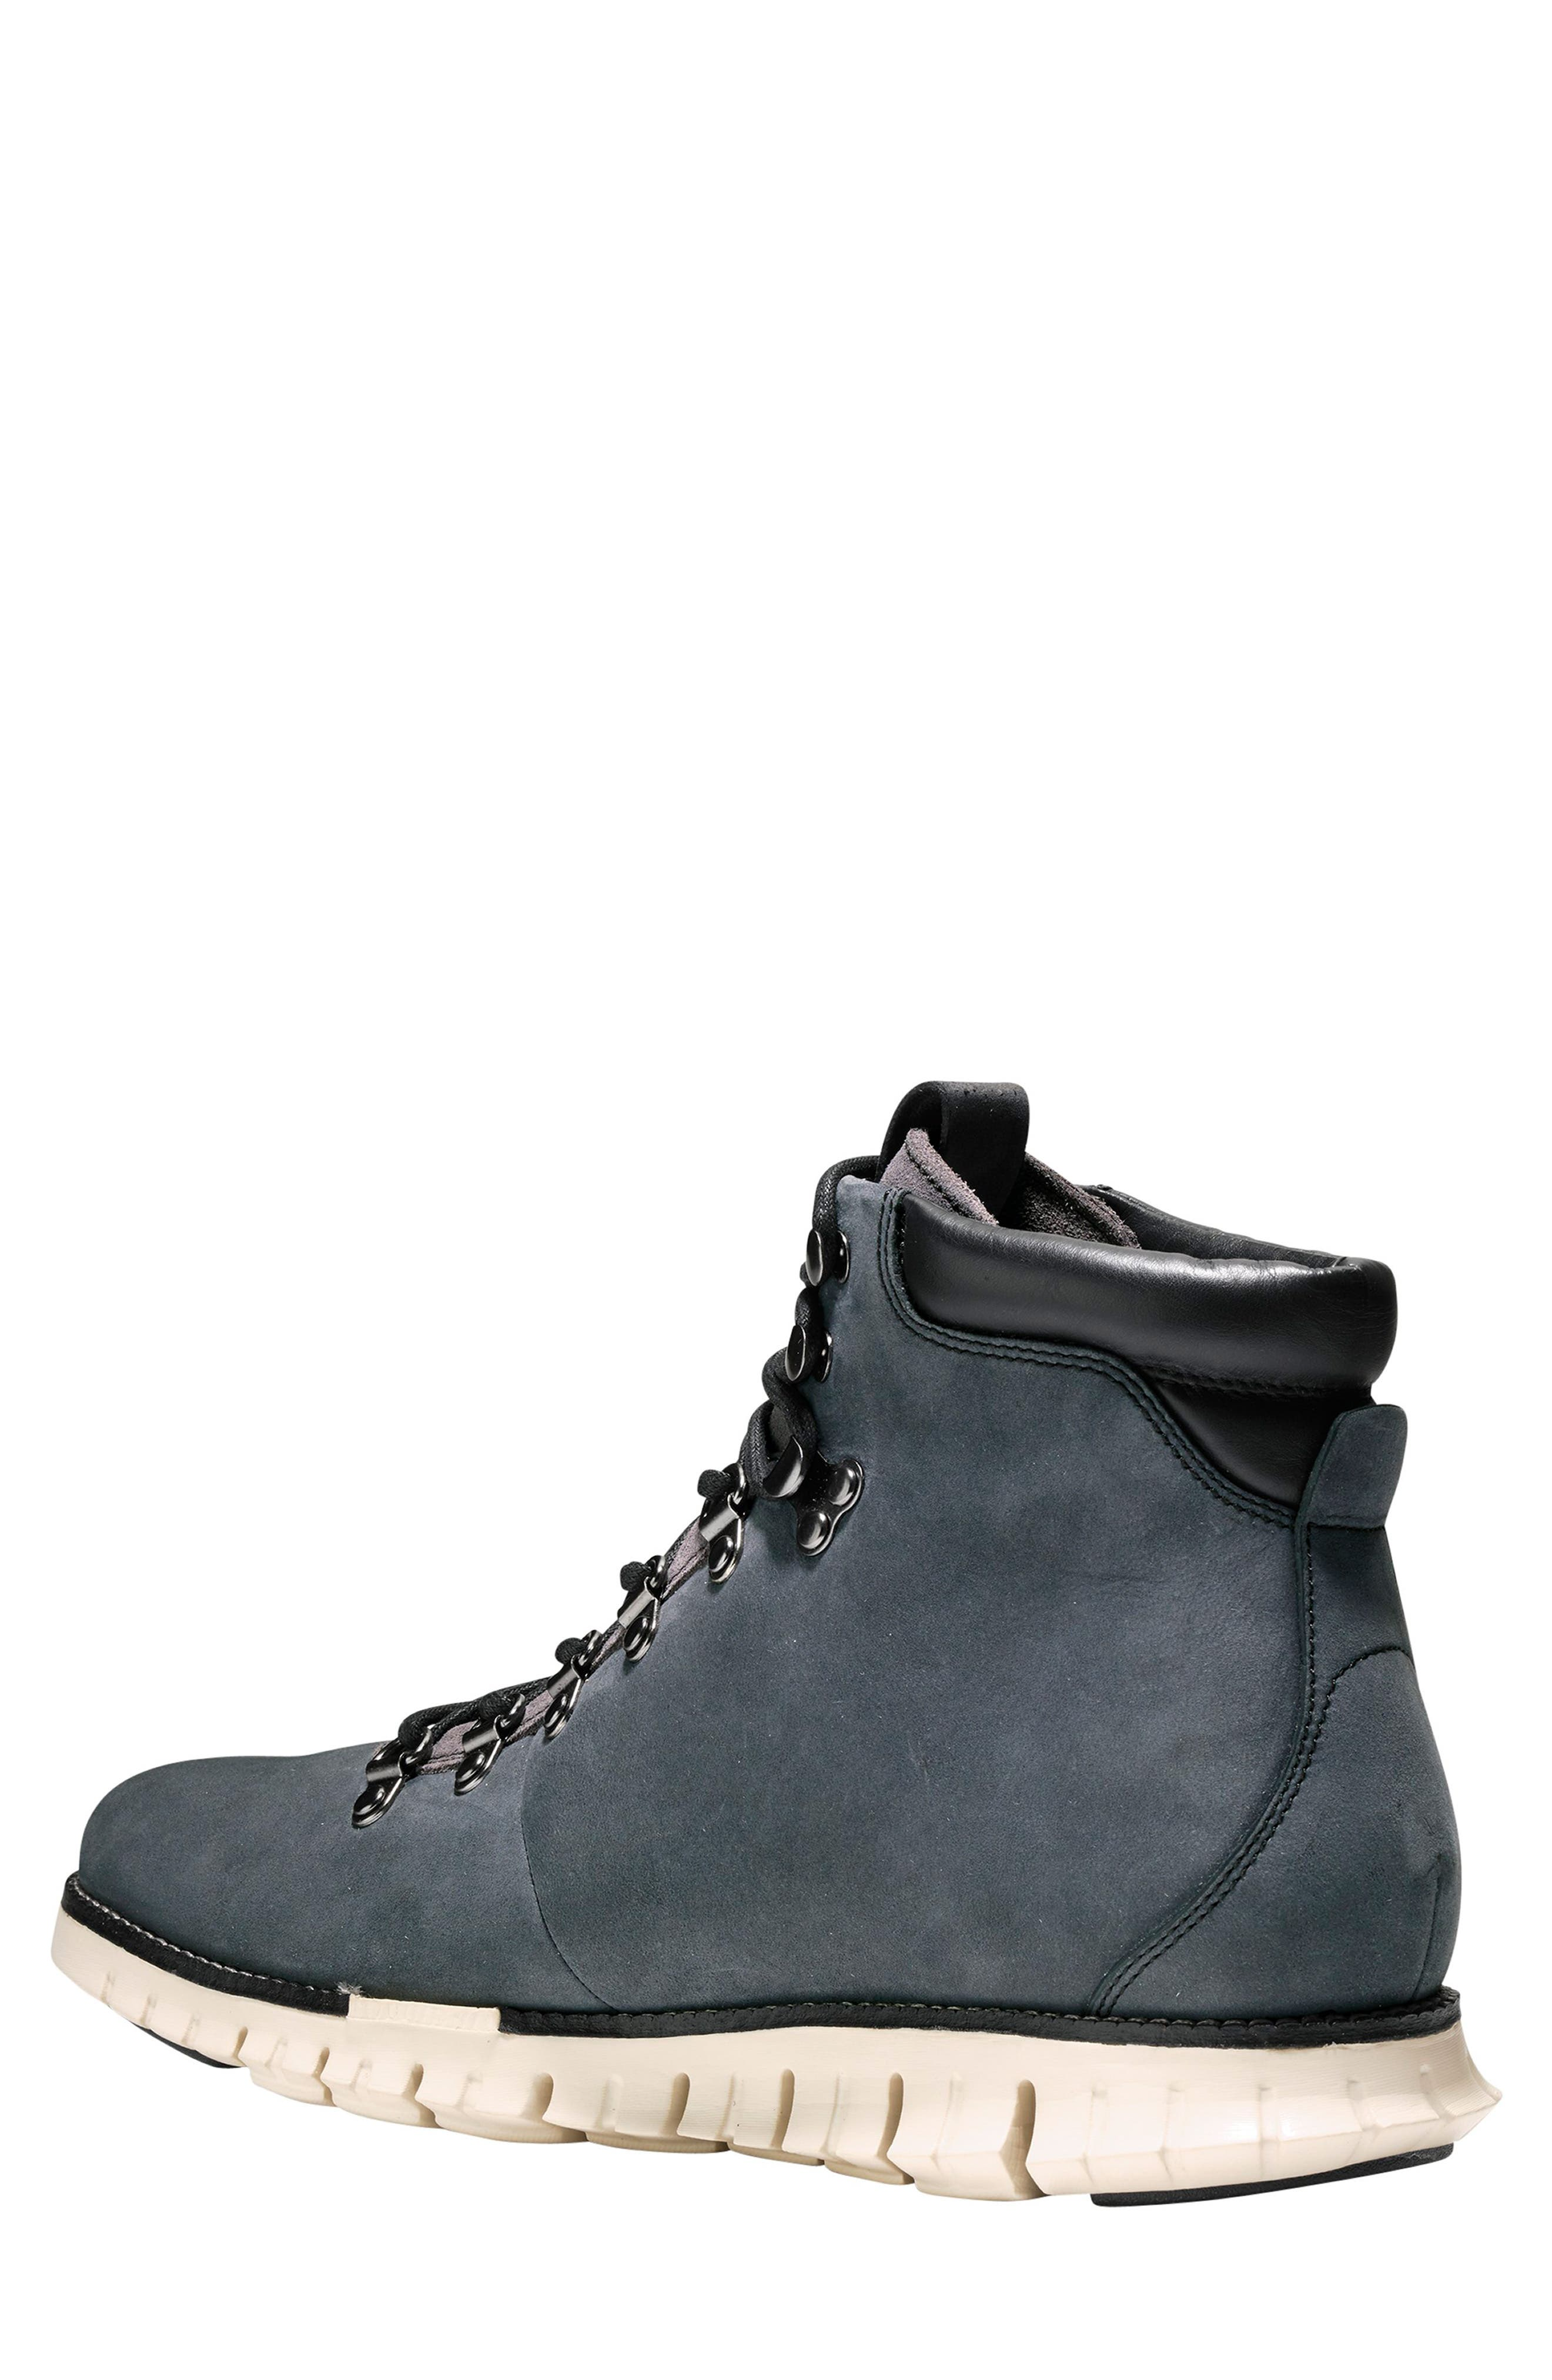 ZeroGrand Water Resistant Hiker Boot,                             Alternate thumbnail 2, color,                             GREY/ IVY LEATHER